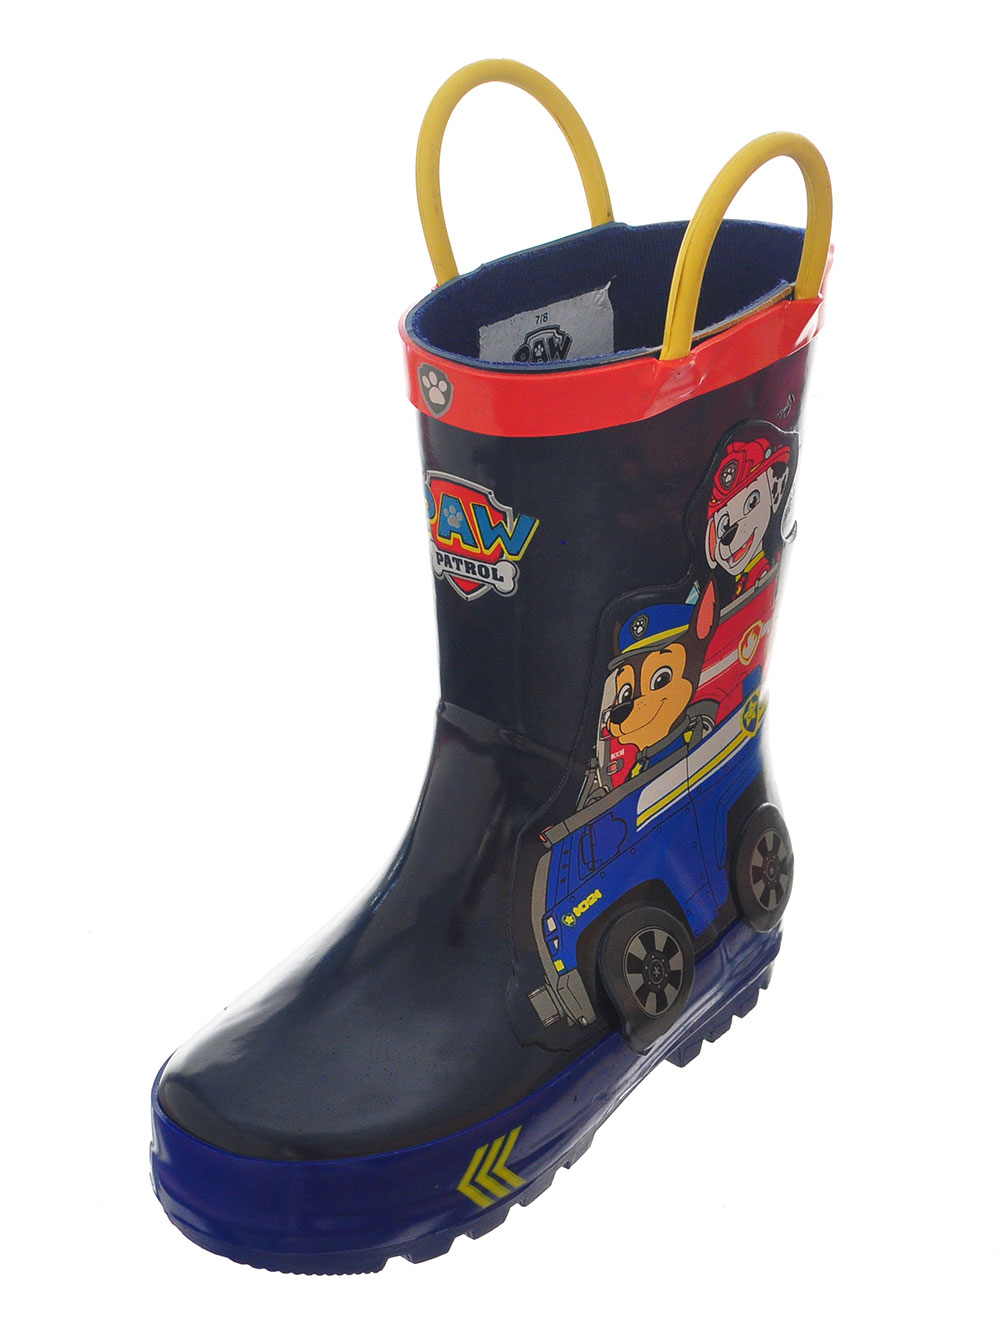 Paw Patrol Boys' Rain Boots (Sizes 7 - 12)